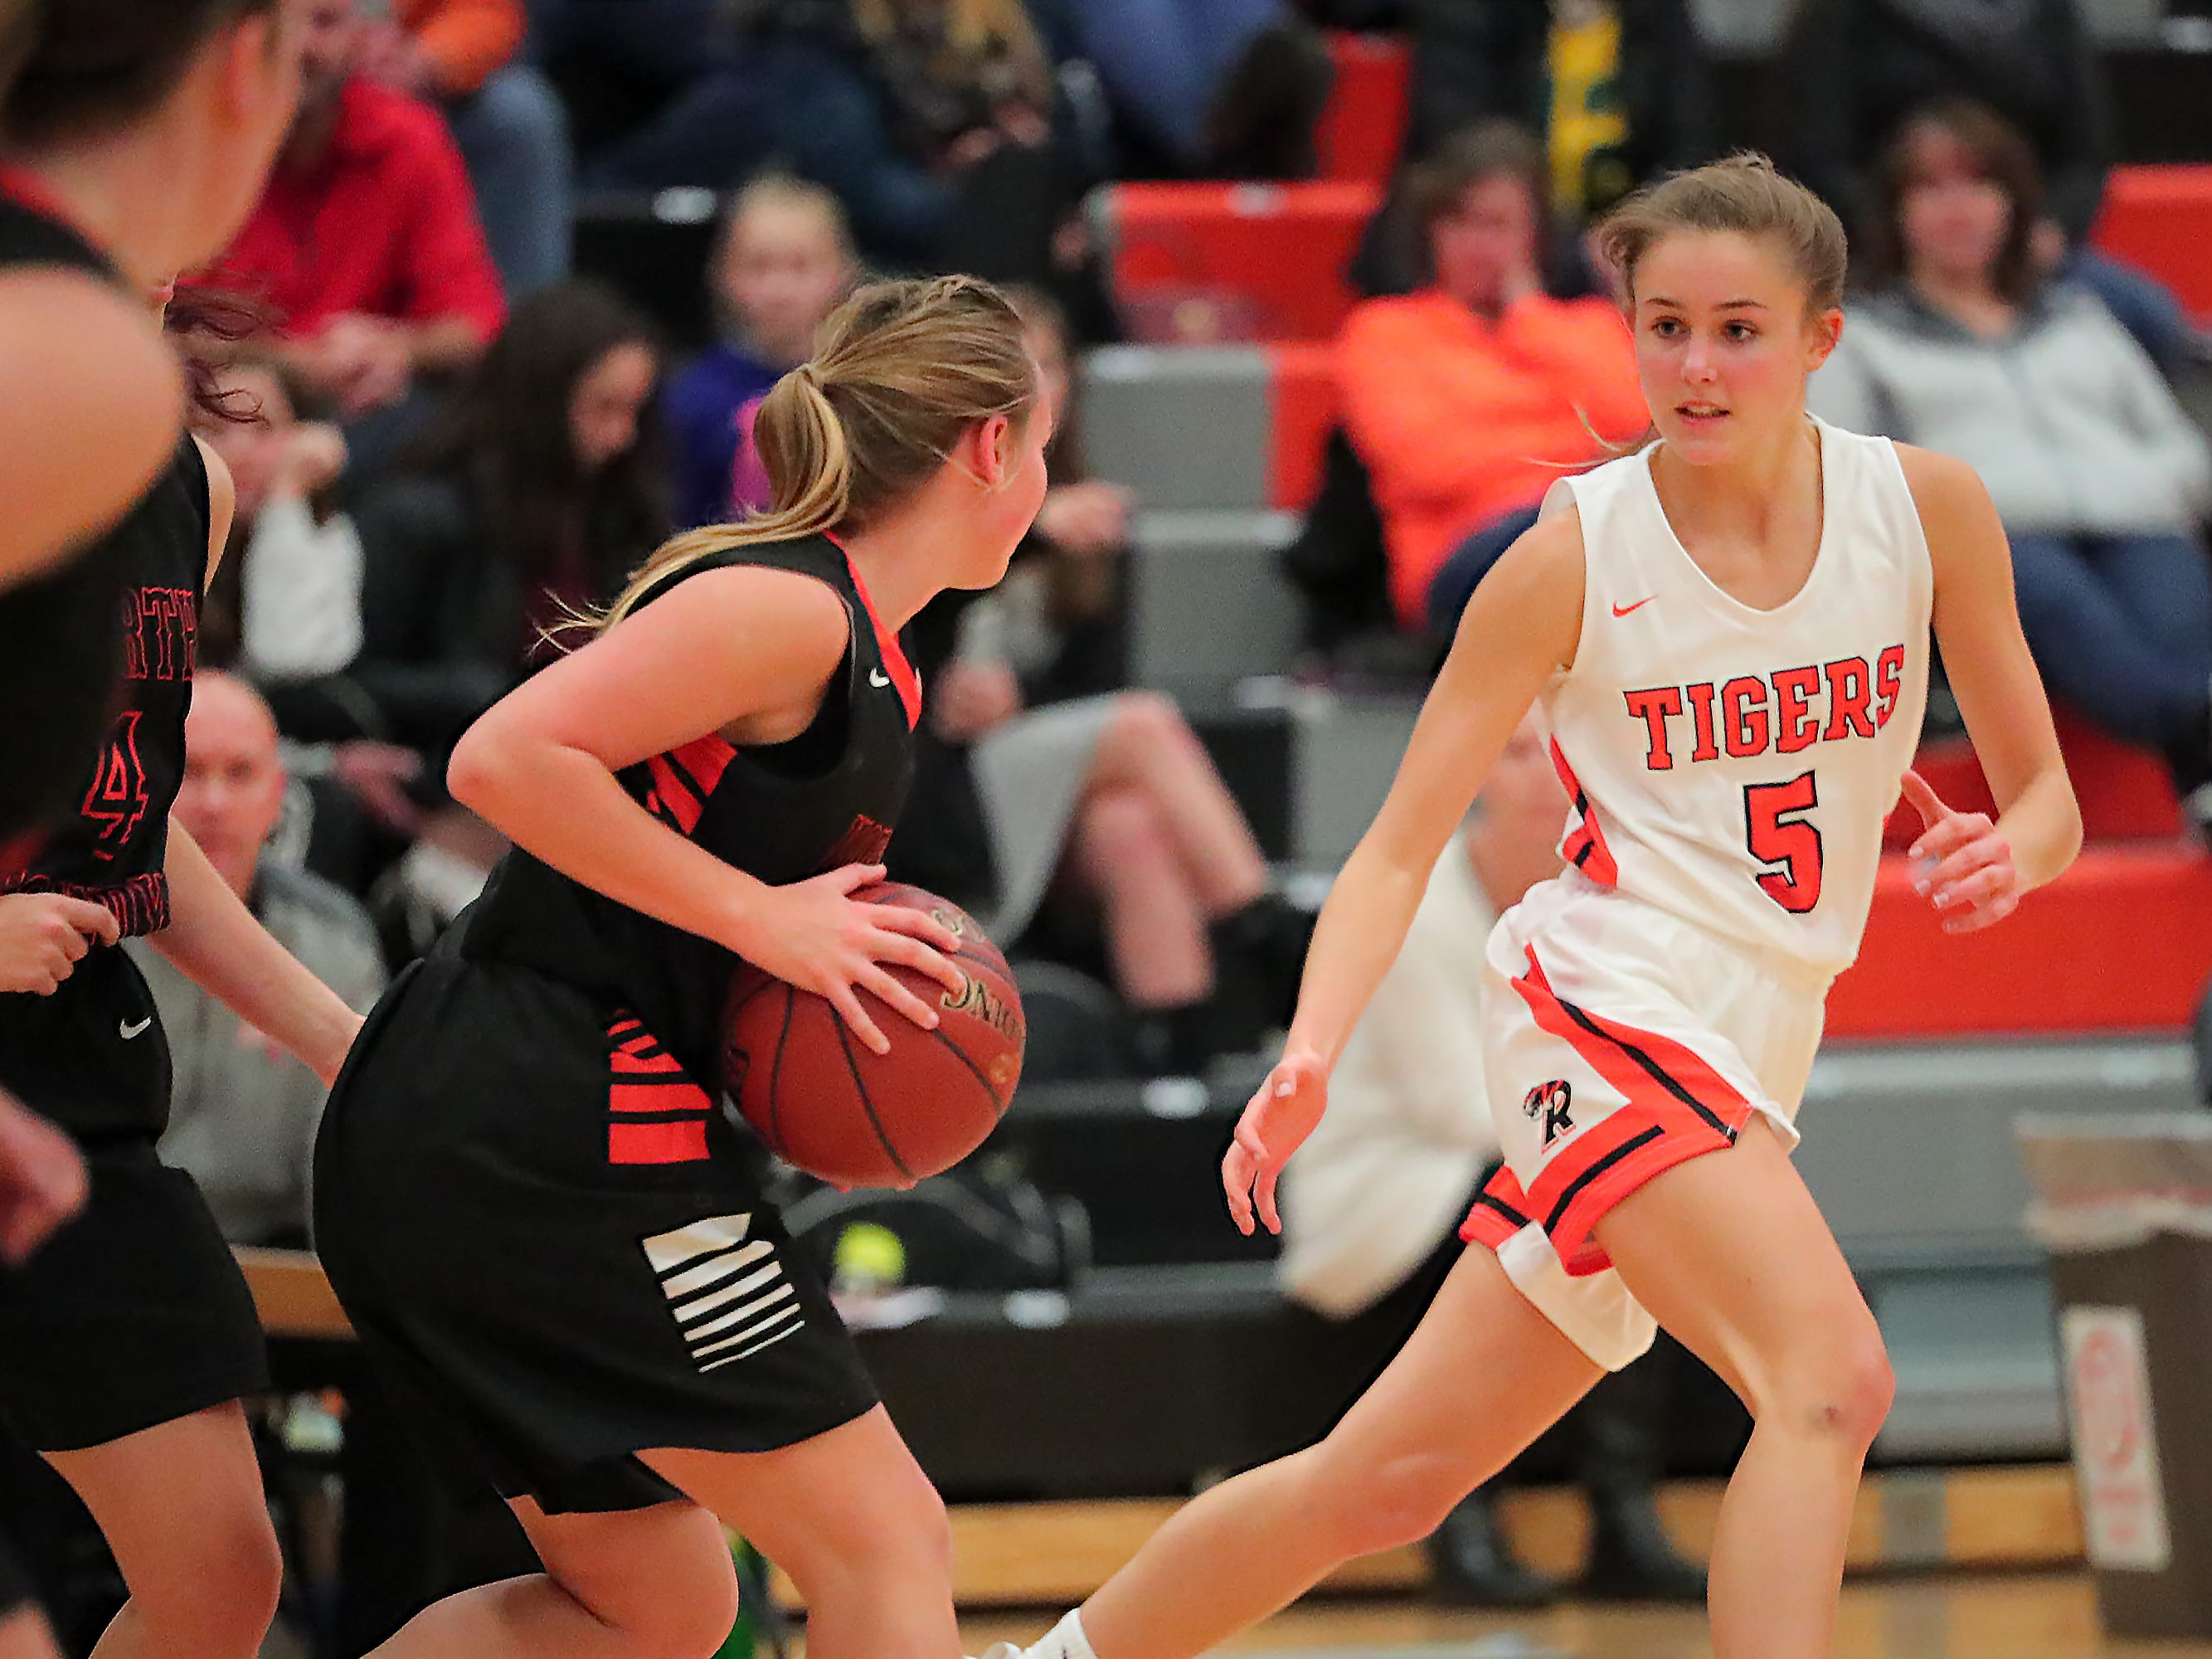 Hadley Neper (5) of Ripon keeps her eye on the ball. The Ripon Tigers hosted the North Fond du Lac Orioles in a non-conference basketball game Thursday evening, November 15, 2018.